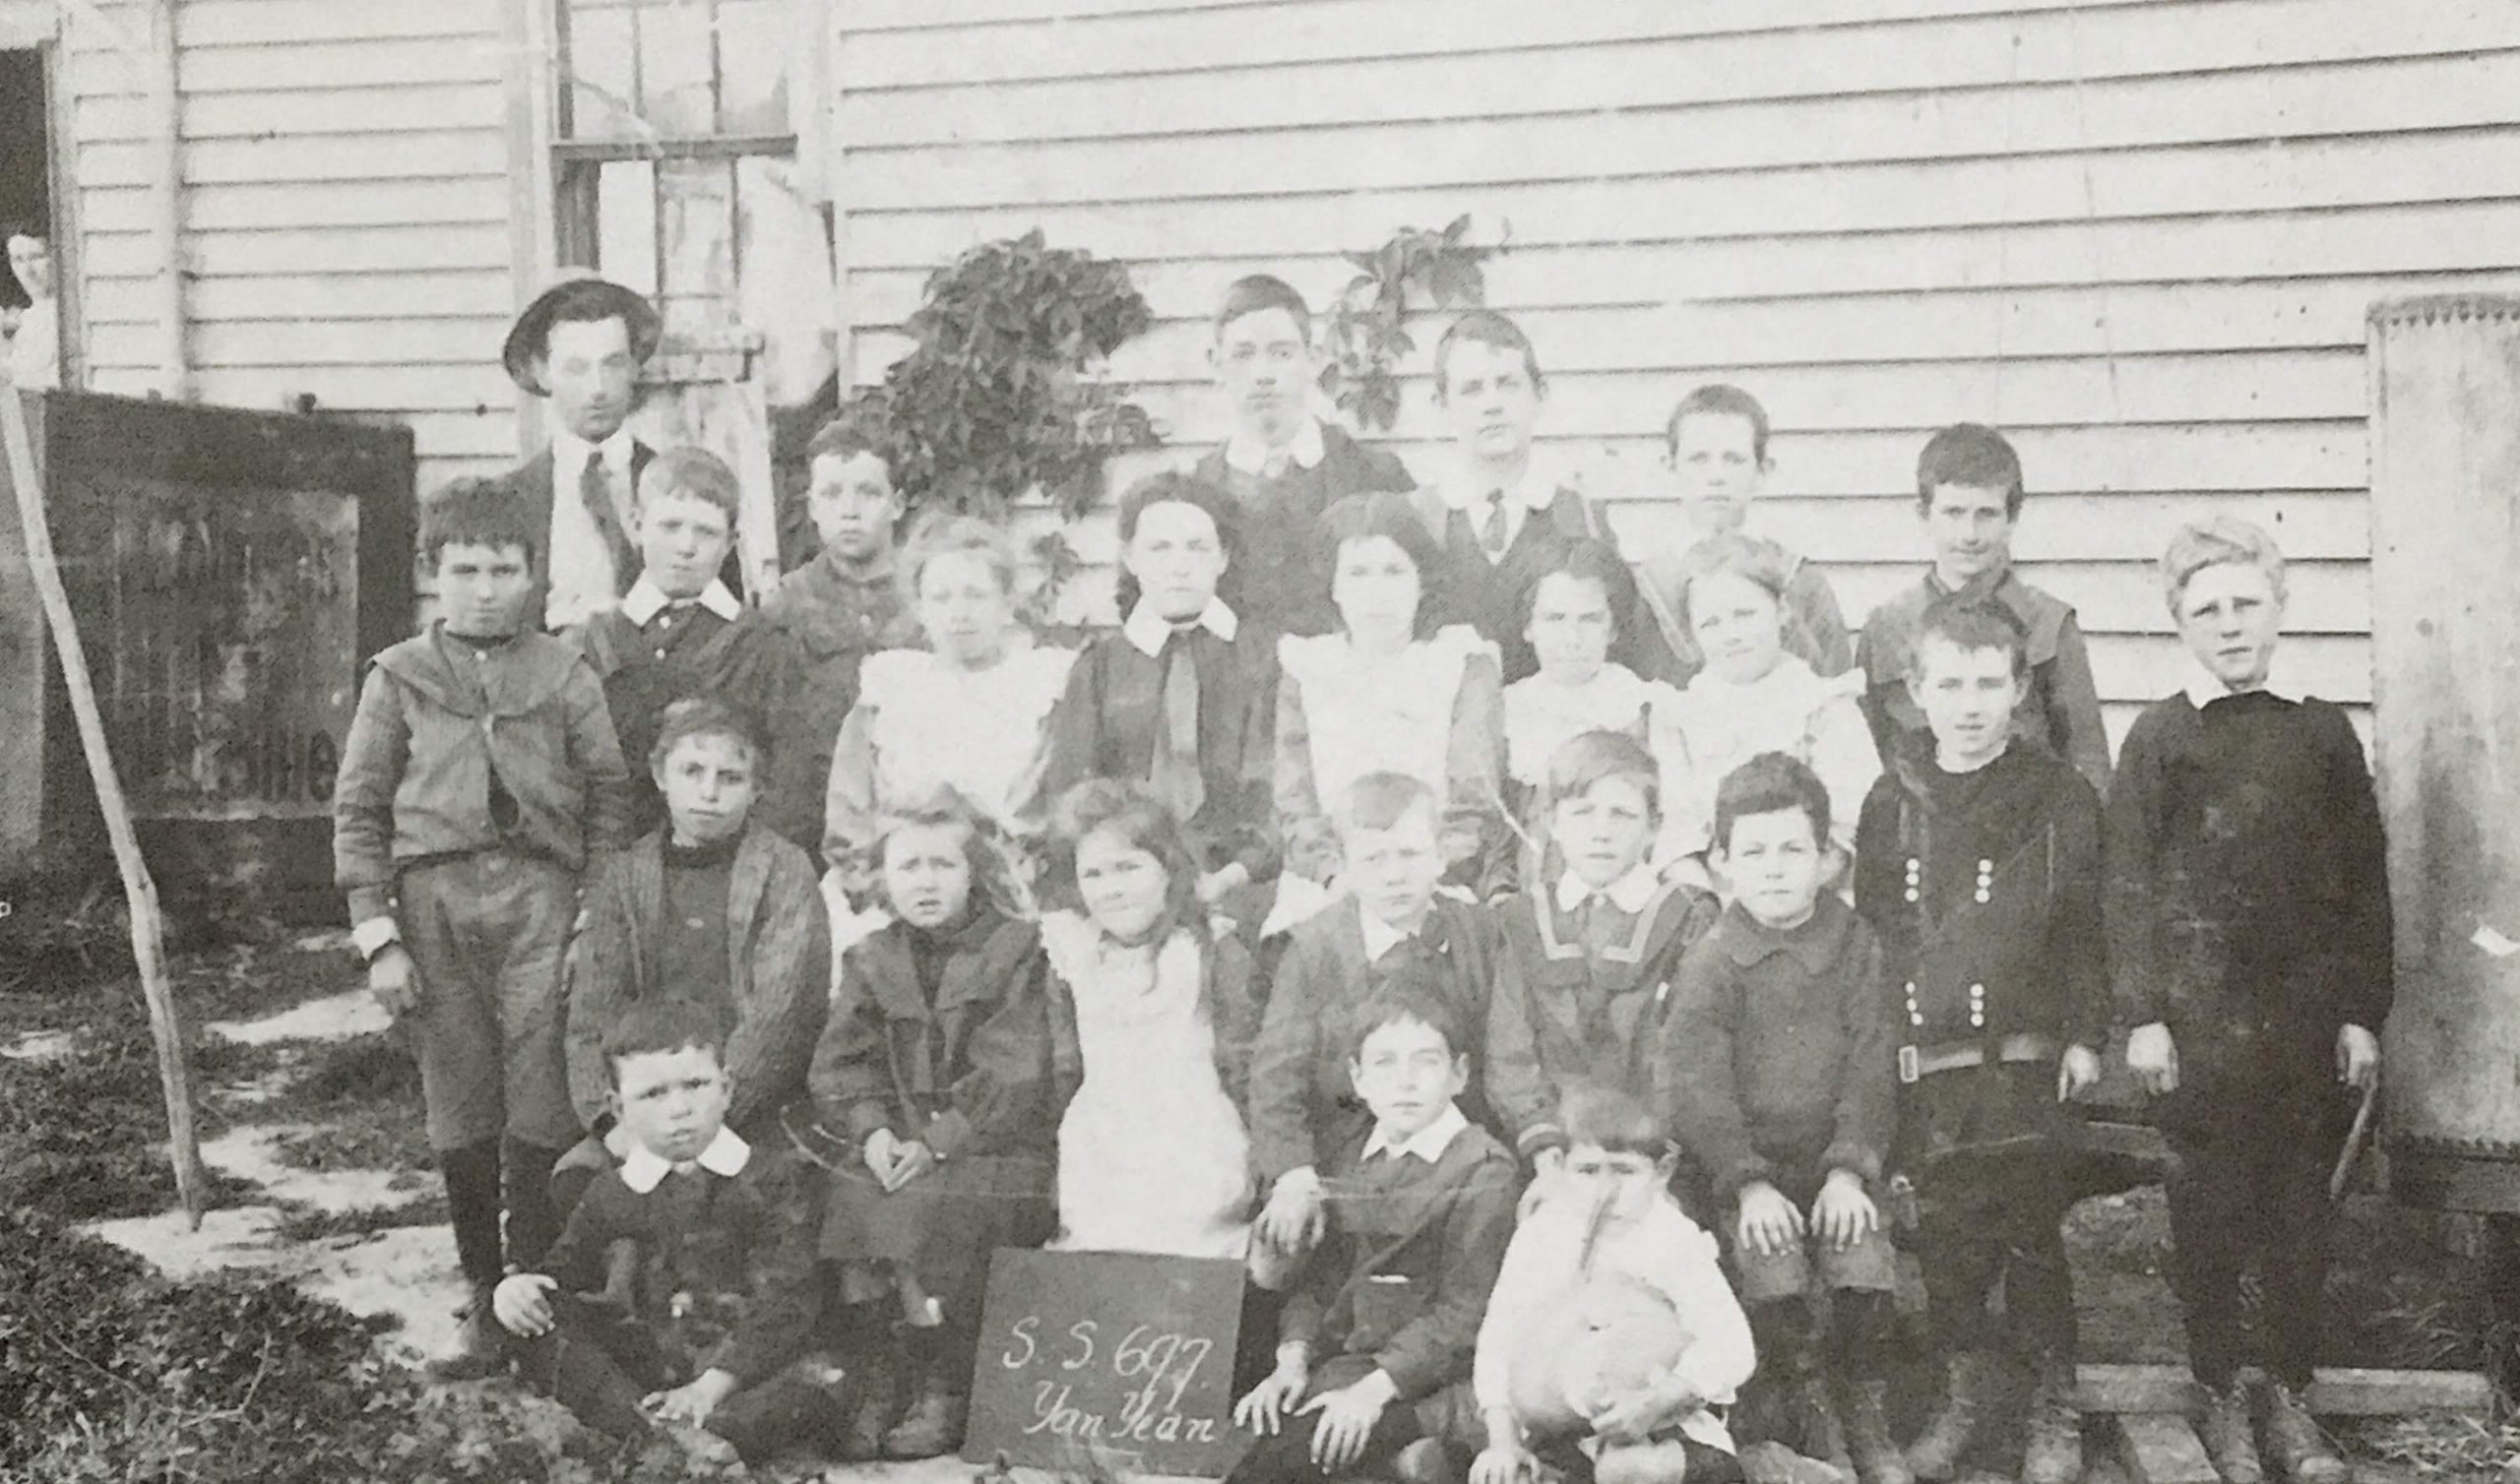 Yan Yean State School No. 697, c 1911.  Back Row: Mr Babbage, Glady Olney, George Wilson, Myles Merrilees, Don McKenzie. Third Row: Harold Boyes, Ken McPhee, Cathie Draper, Ida Wilson, Myrtle McIntosh, Lily Wilson, Hazel Hurrey, Jack McKenzie. Second Row: Jack Hancorne, Sally Hancorne, Doris Hurrey, Chester Draper, Tom Draper, Alec Mann, Walter McDonald. Front Row: Archie Andrews, Roy Smith, George McIntosh.  There were over thirty children attending the Yan Yean State School when we Draper siblings started school there. There were eight grades and one teacher – Alfred Babbage who was Teacher from 1909 to 1918. He was strict and used the strap fairly freely. He was also bad tempered but put his whole life into his job. All nine of us gained our Merit Certificate